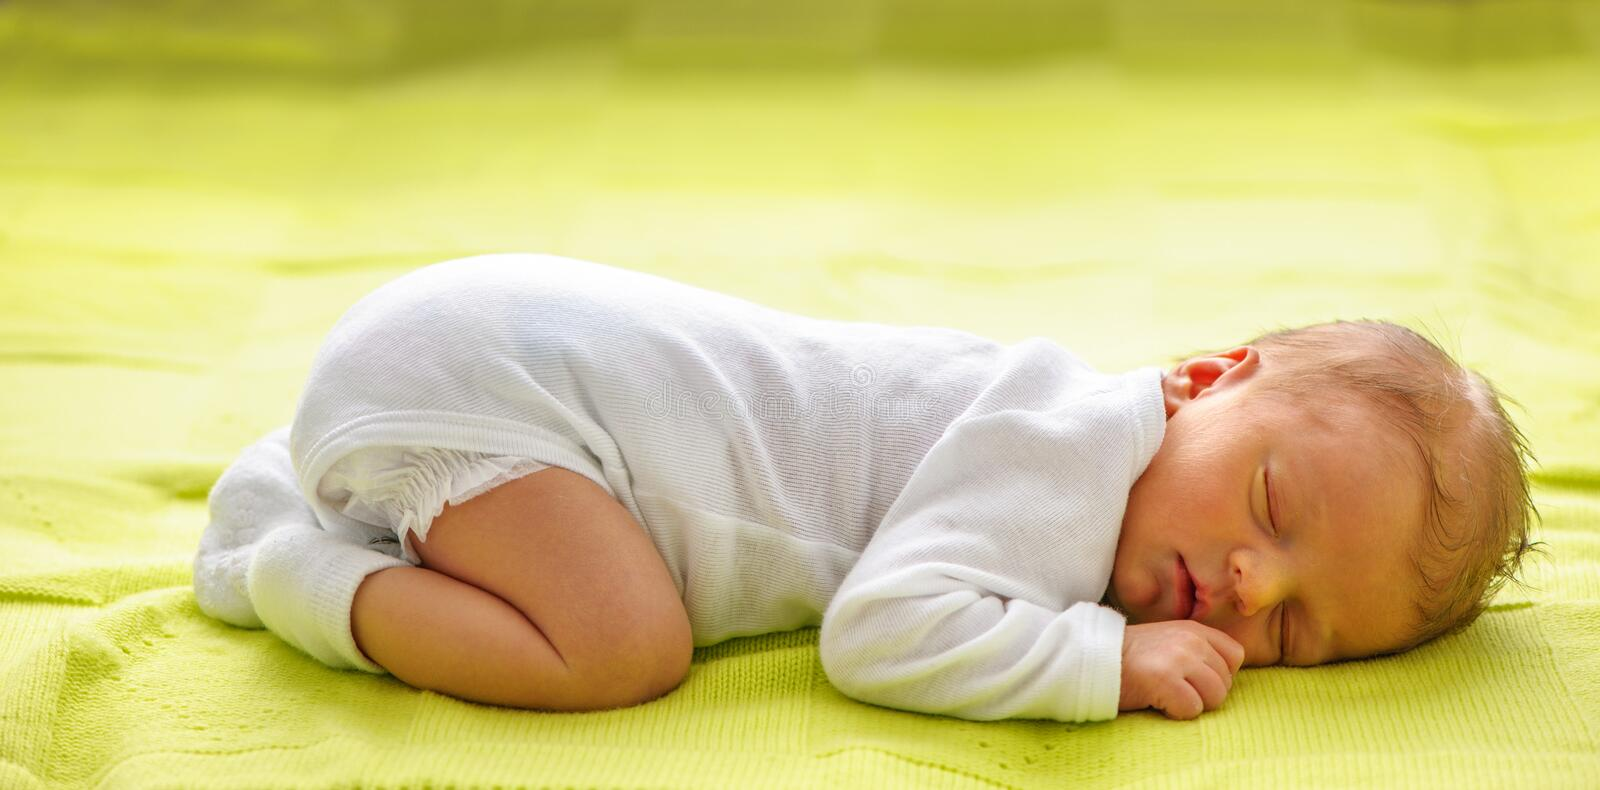 One week old newborn baby stock images